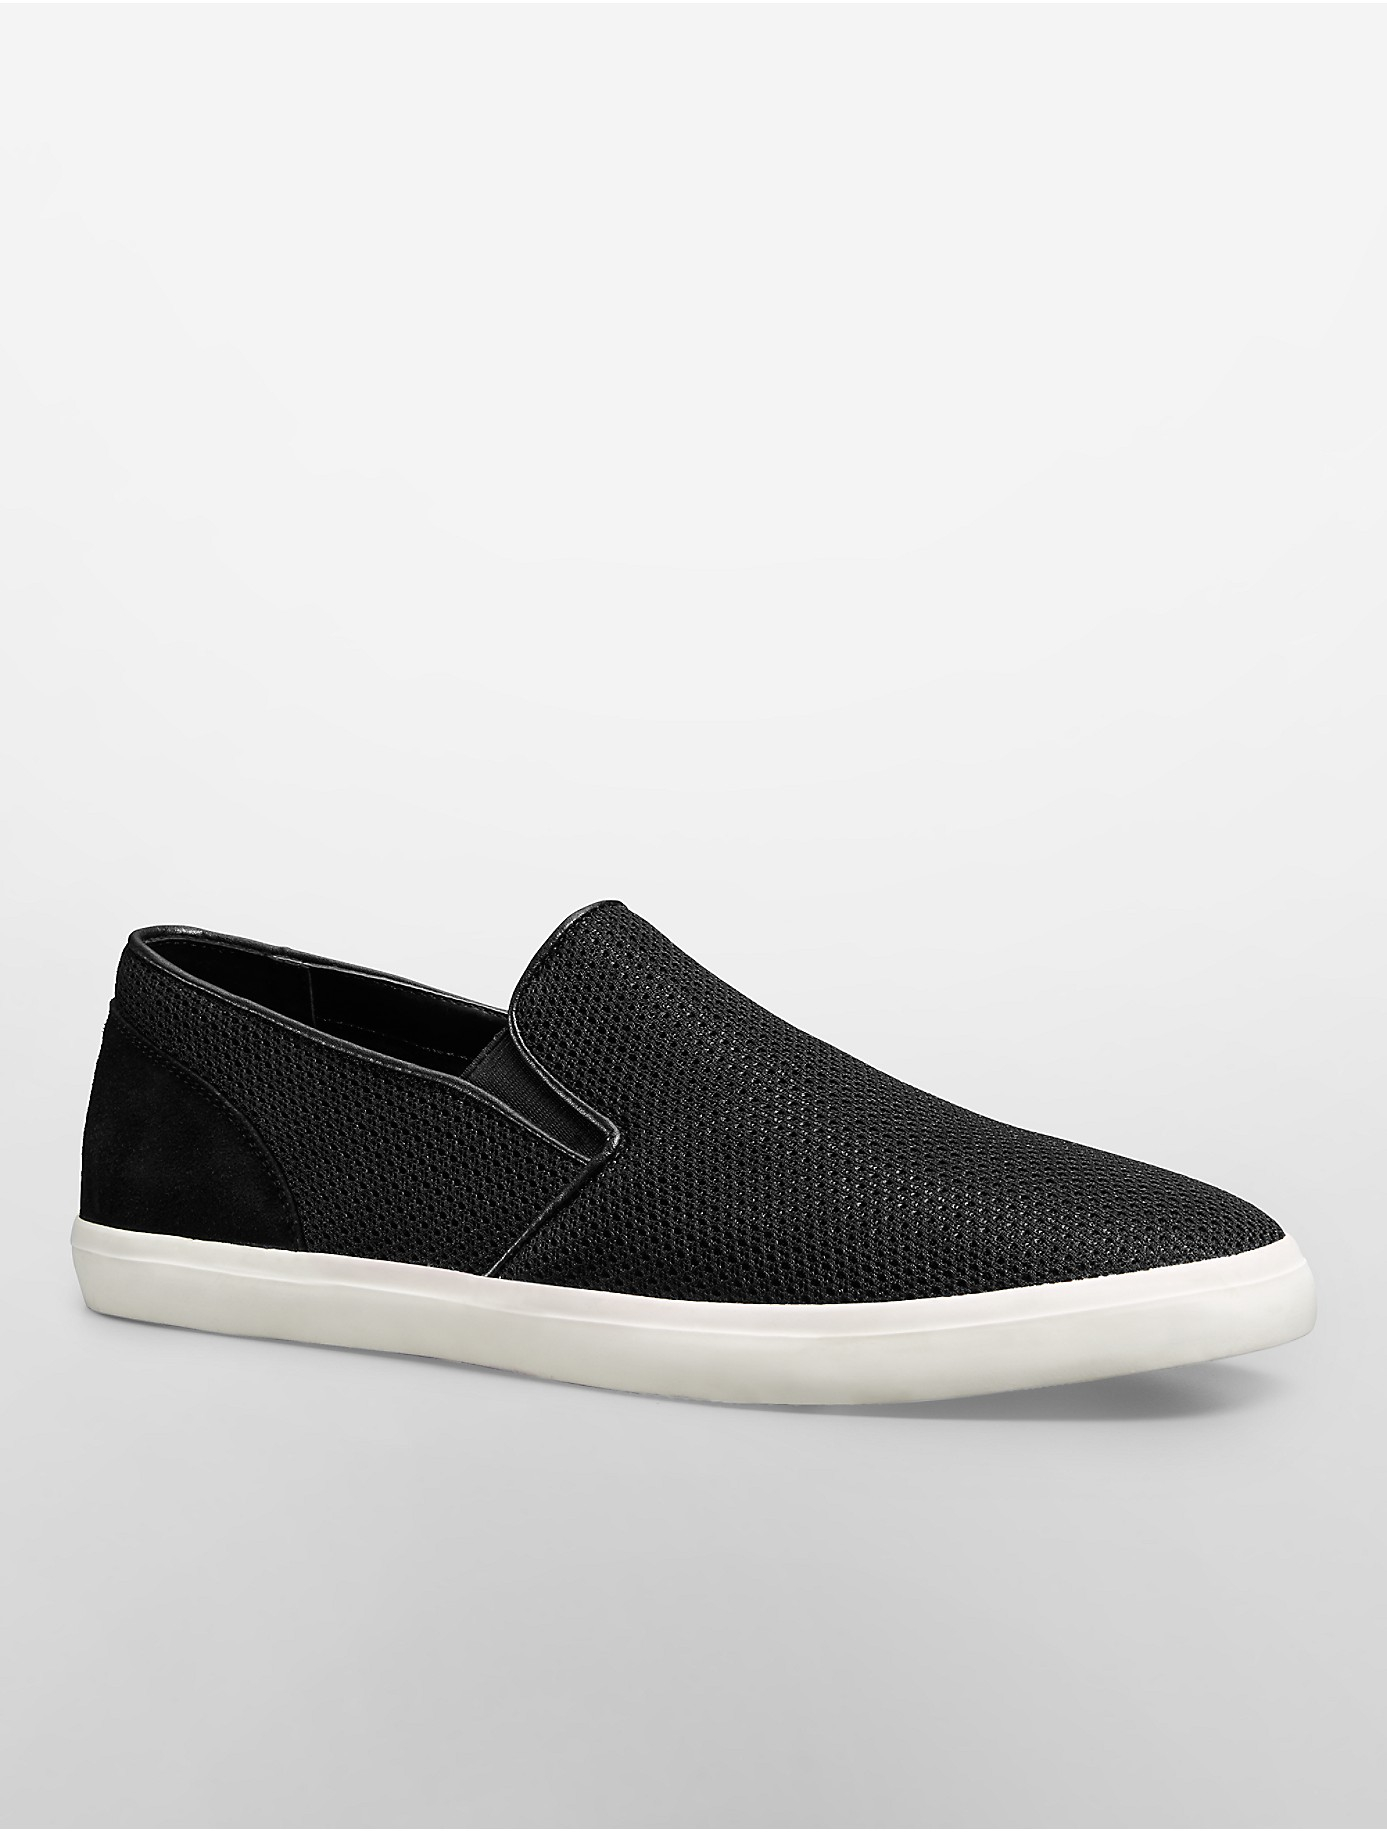 Canvas Slip-On Shoes Calvin Klein